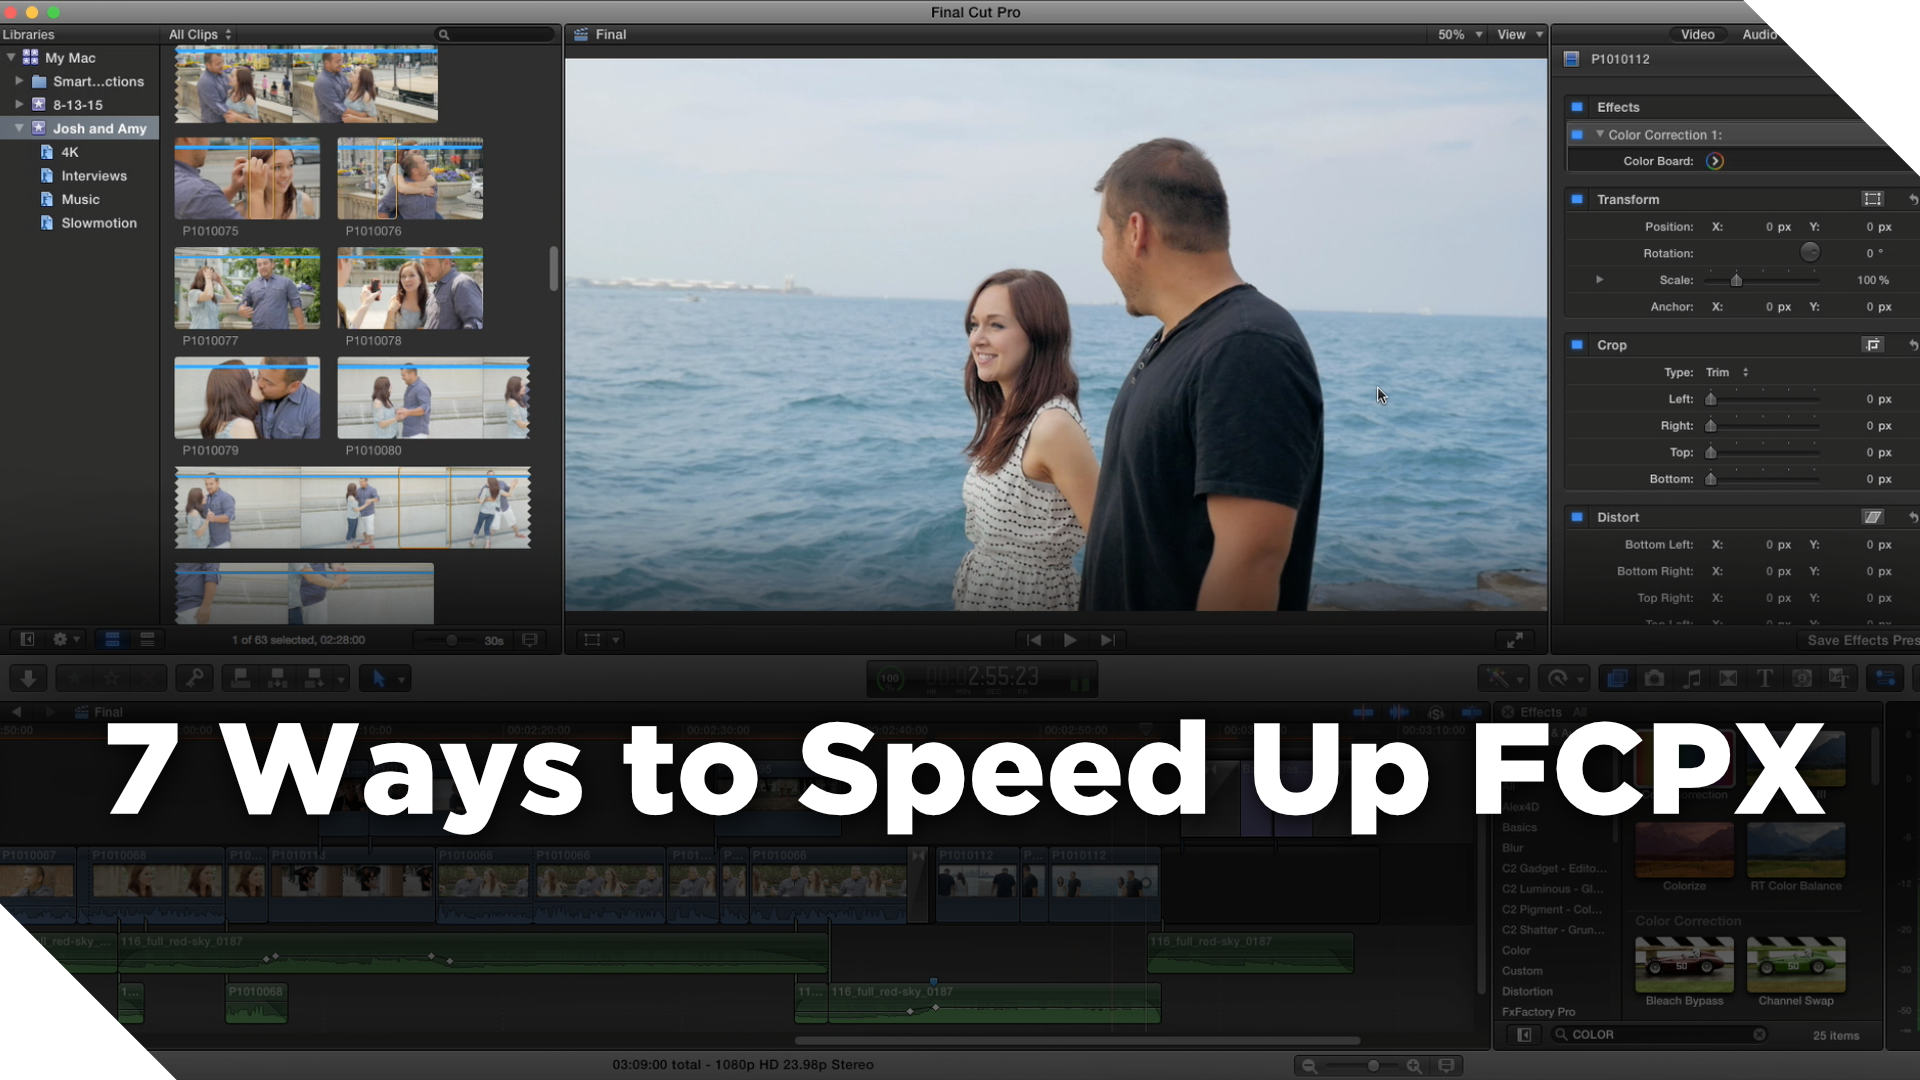 Final Cut Pro X Slow? Here are 7 Ways to Speed up FCPX